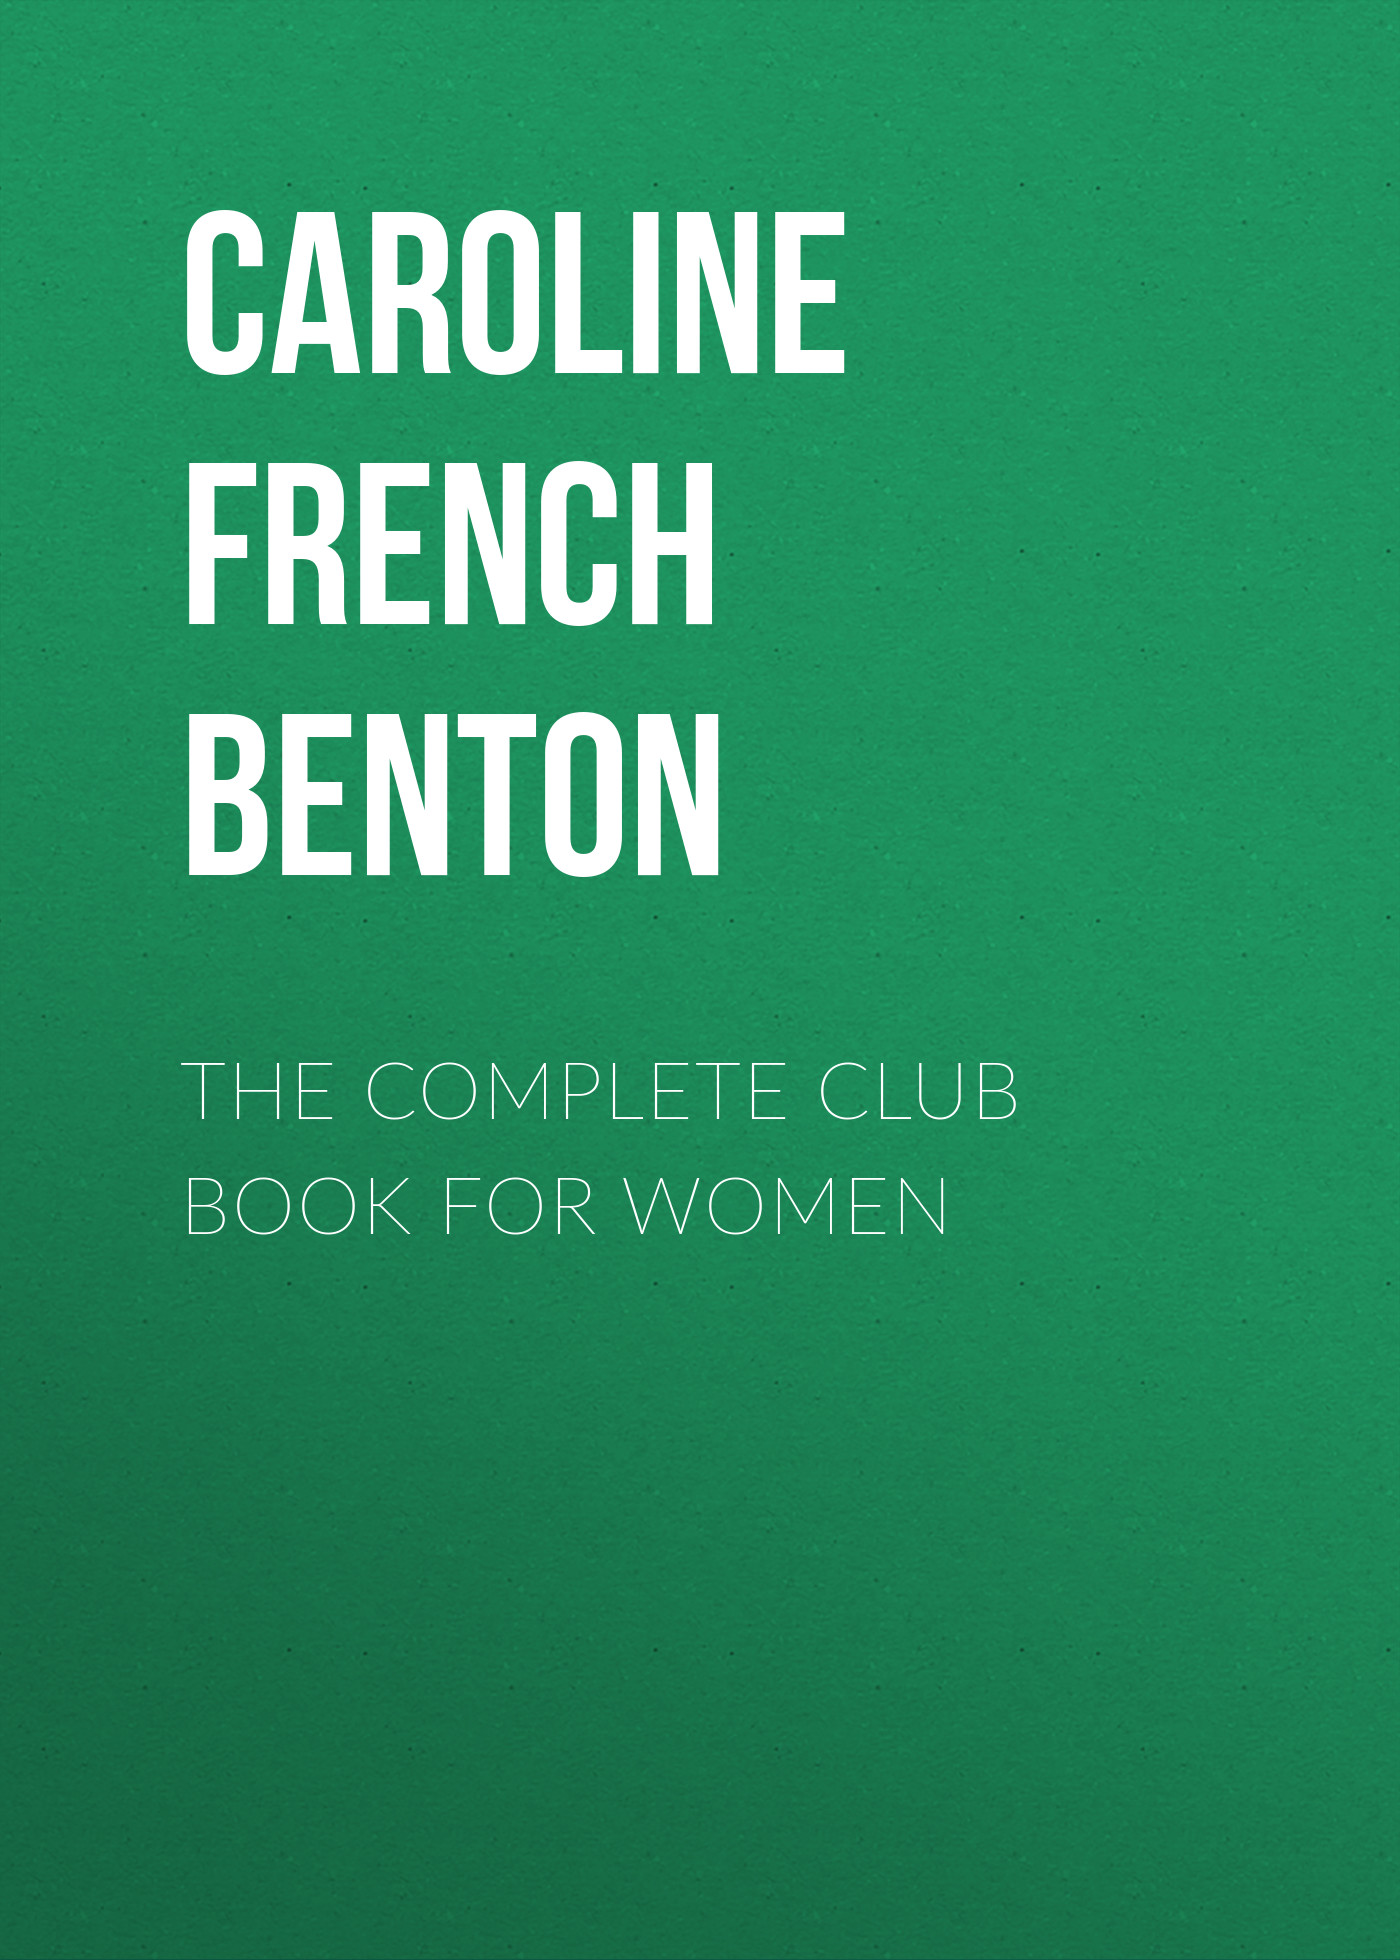 Caroline French Benton The Complete Club Book for Women chispaulo women brand leather handbags hot sell luxury handbags women bags designer bolsa femininas women s new t574